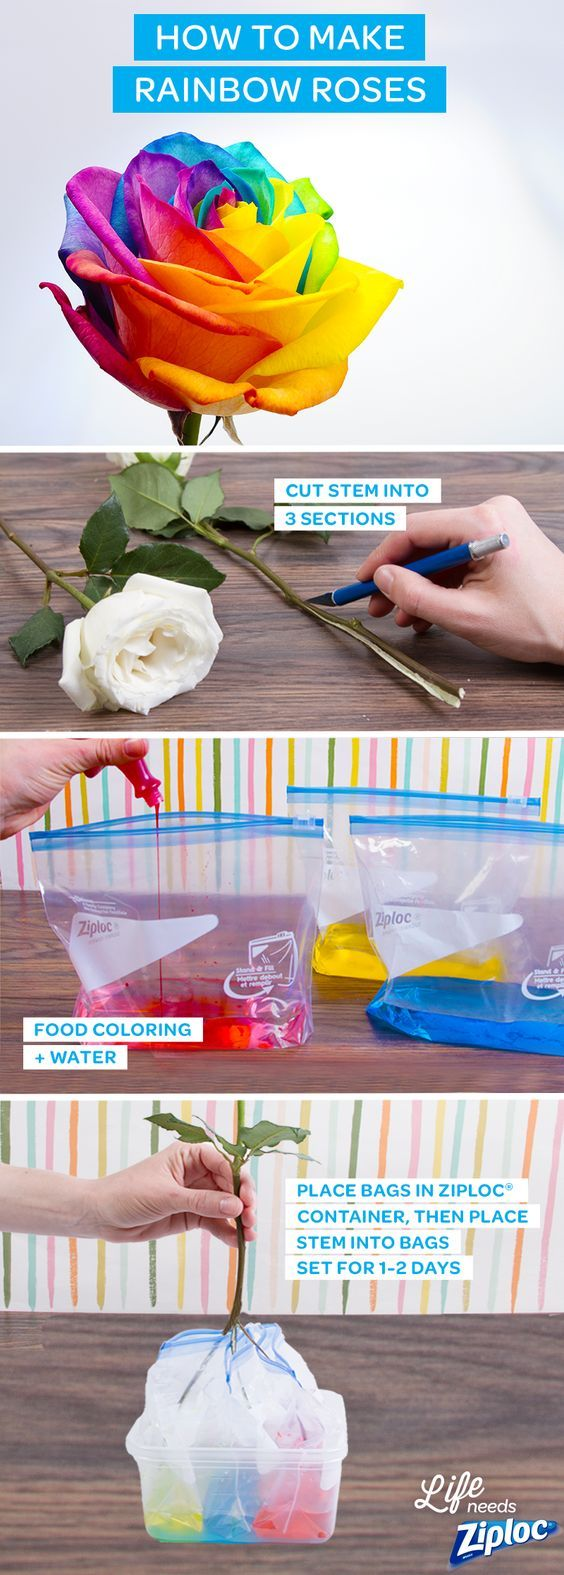 Brighten up your house with these gorgeous rainbow roses. It's simple: just spilt a stem 3 ways (use a knife with parental supervision), then dip into 3 Ziploc® Slider bags filled with different-colored dyes. An inexpensive and DIY way to make mom's day or a great rainy day craft to do with the kids.: